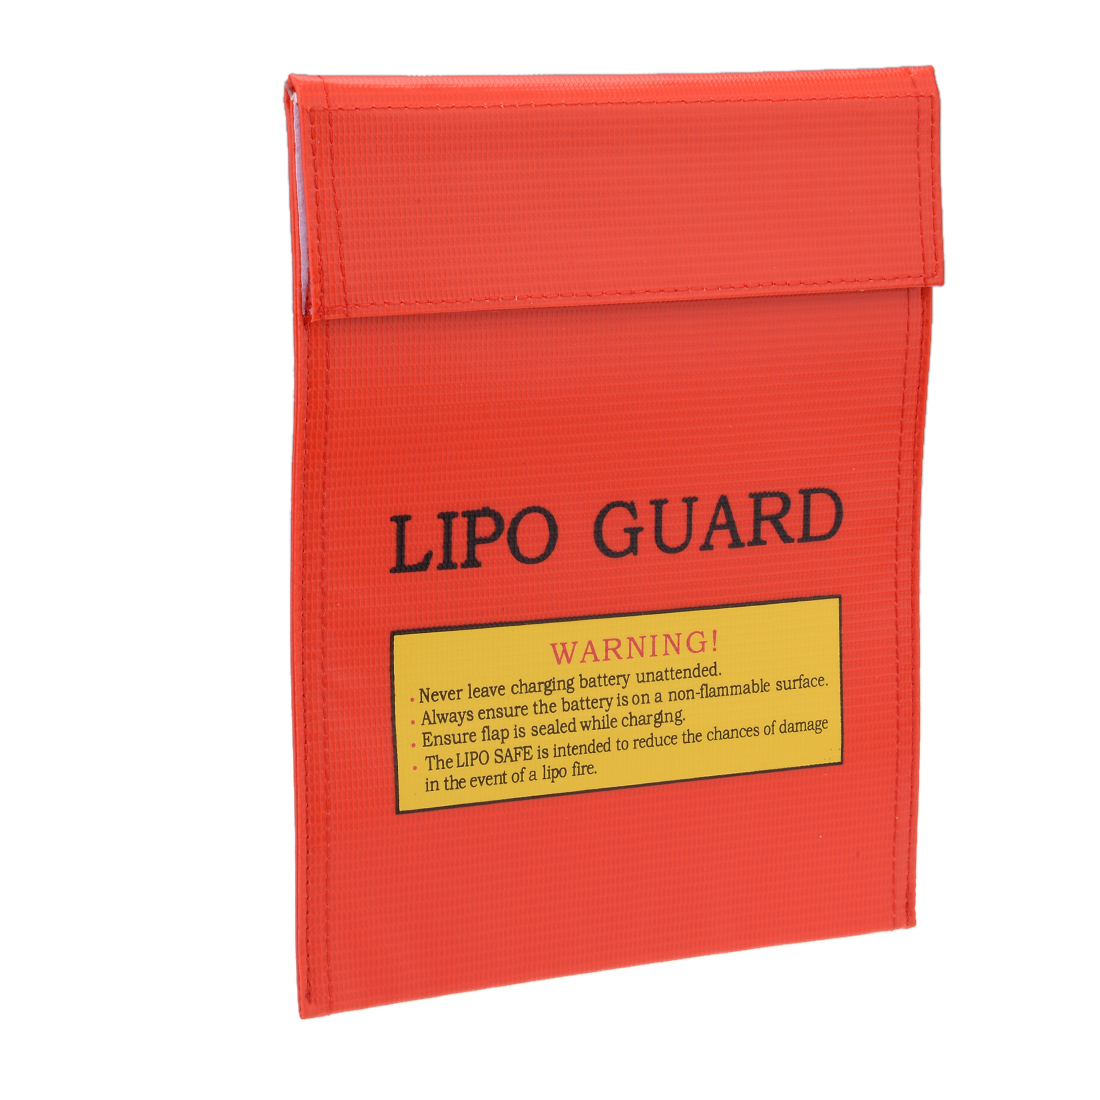 Lipo Battery Fireproof Explosionproof Bag Storage Guard Safe Charging Holder 18cm x 23cm Red